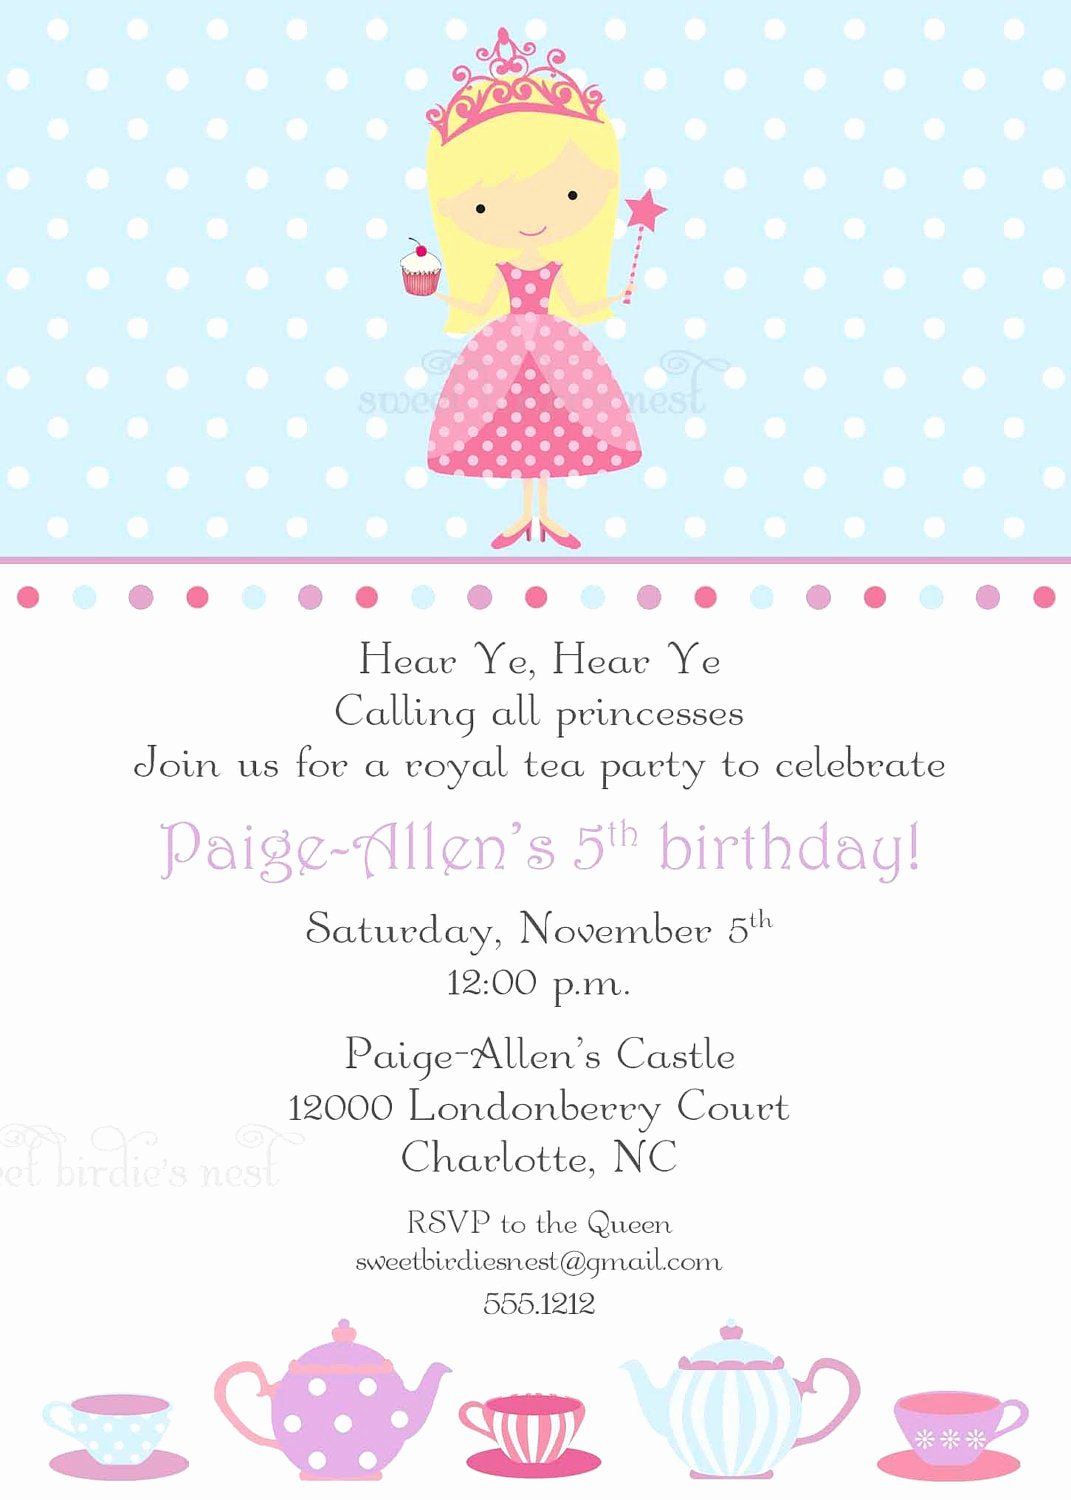 Princess Party Invitation Wording Awesome Items Similar to Princess Tea Party Invitation On Etsy